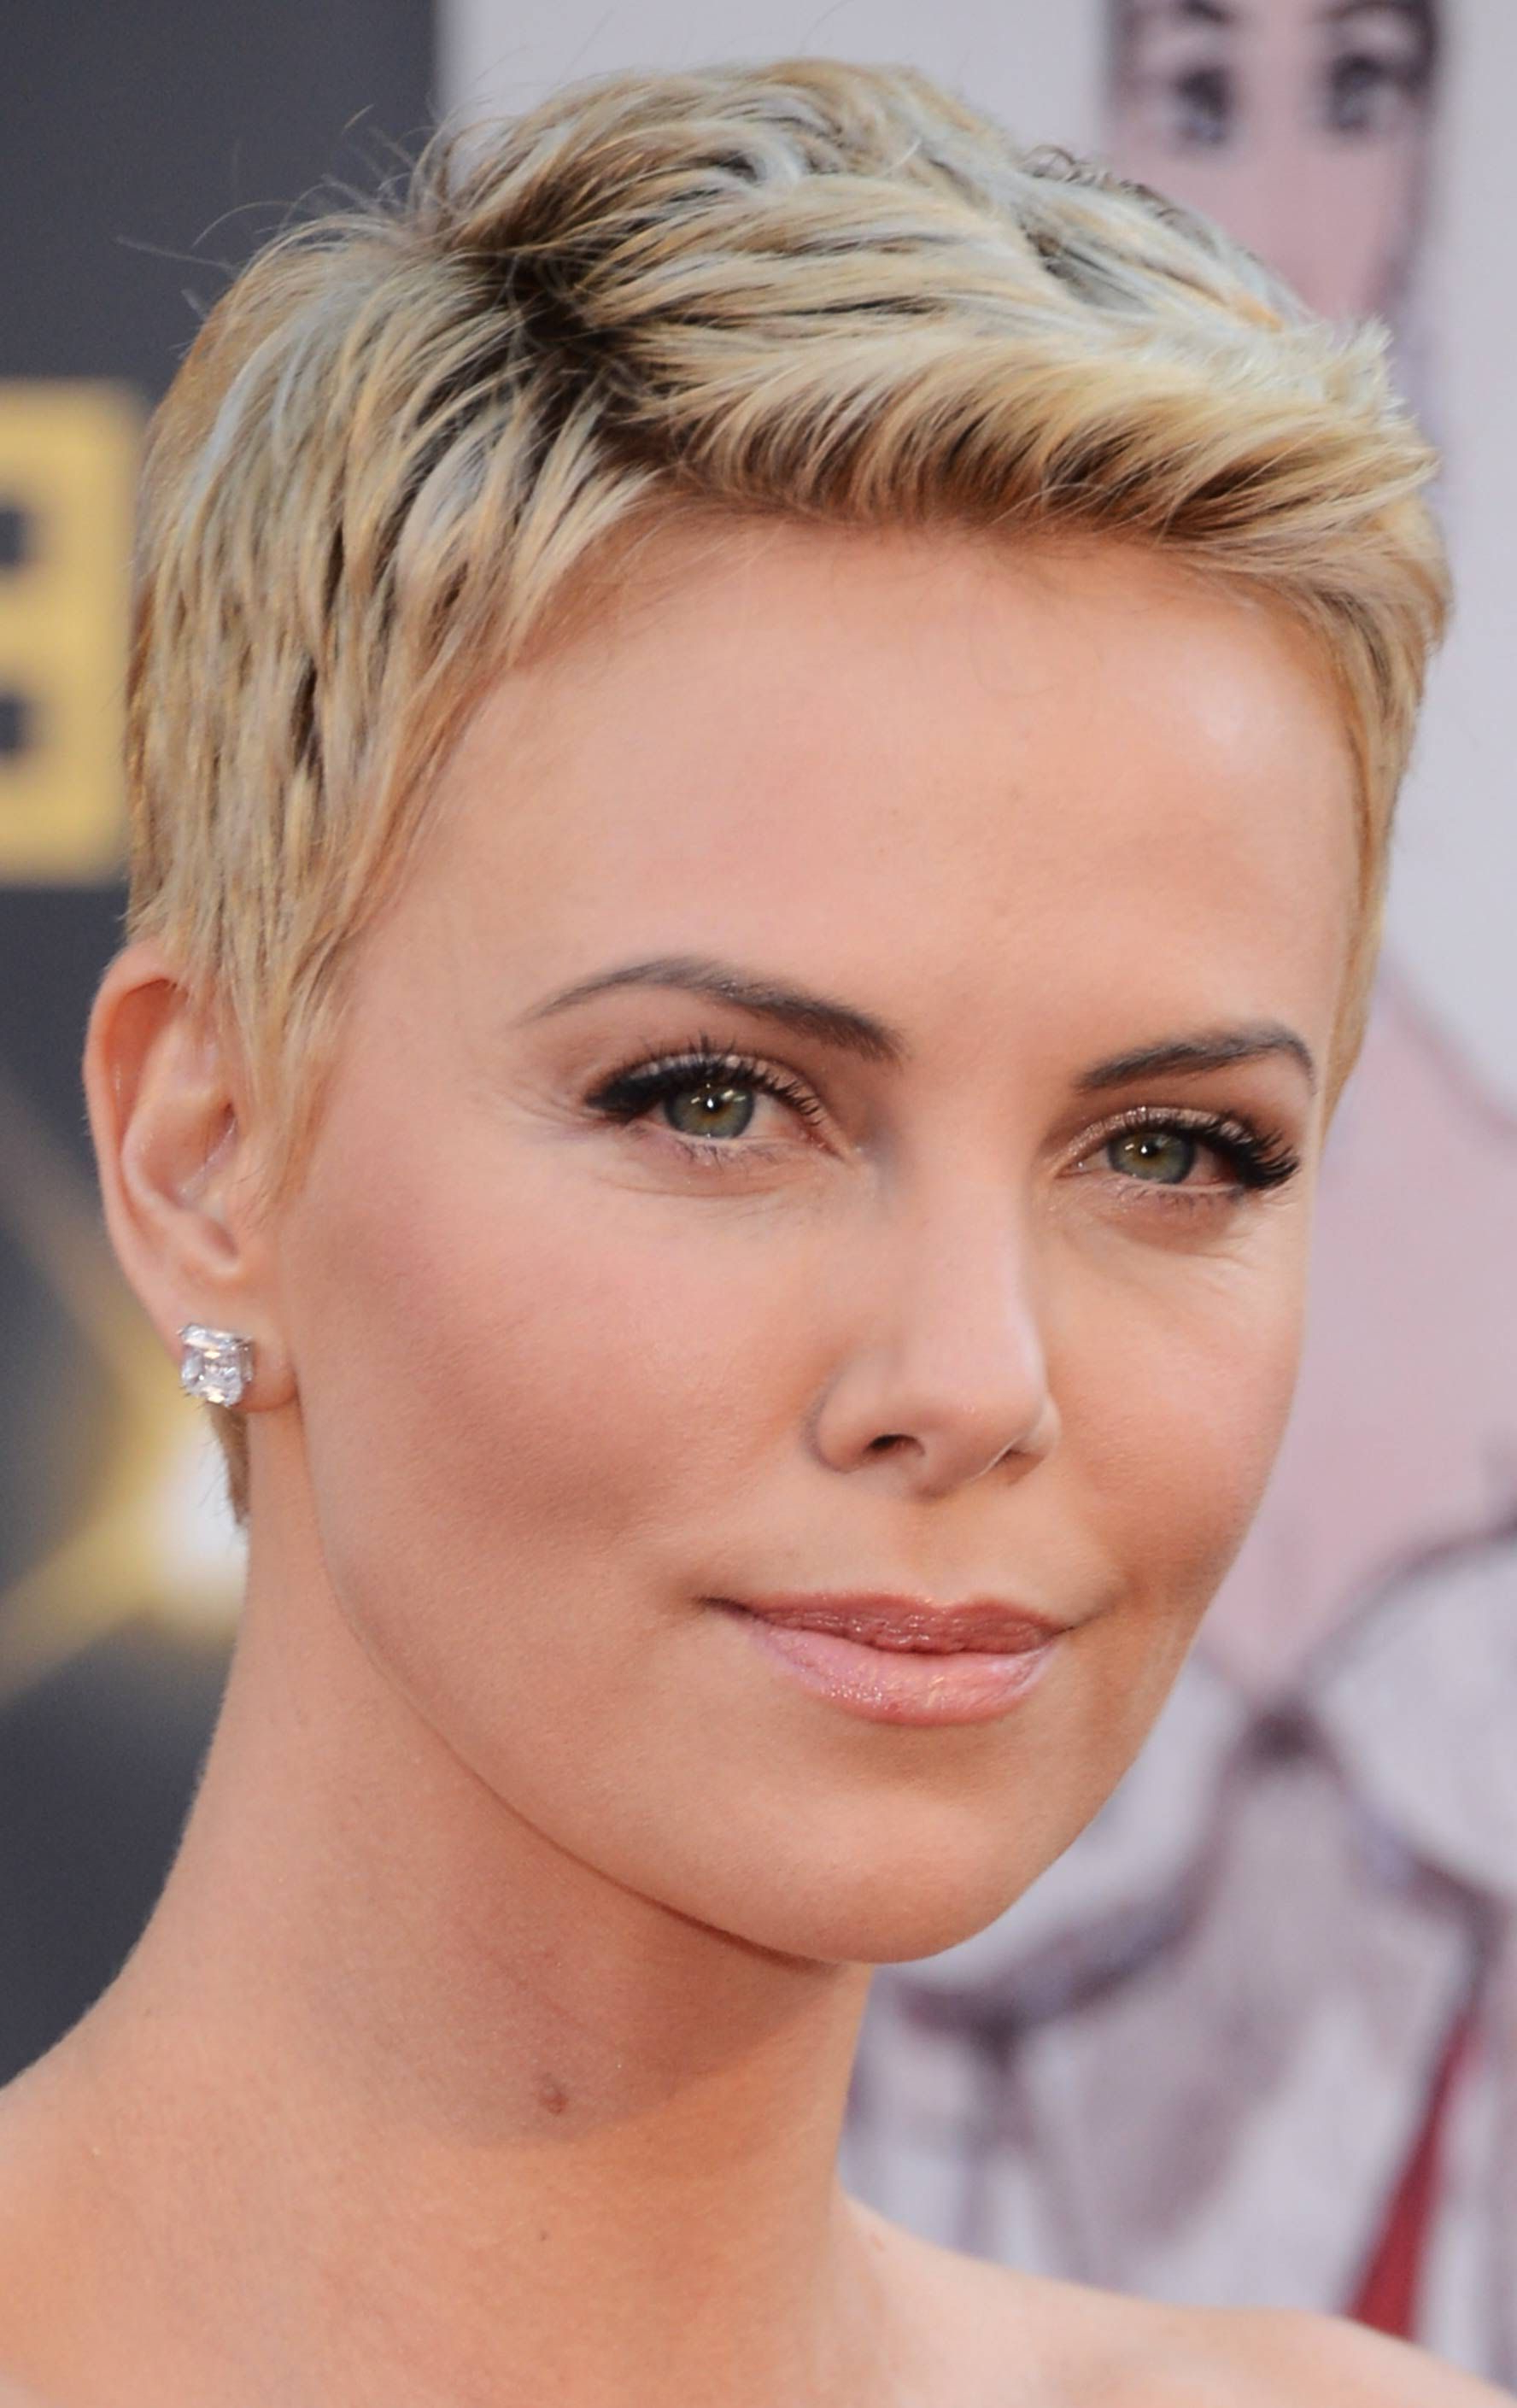 20 Flattering Hairstyles For Oval Faces | Things I Love | Pinterest Within Short Haircuts For Fat Oval Faces (View 6 of 25)